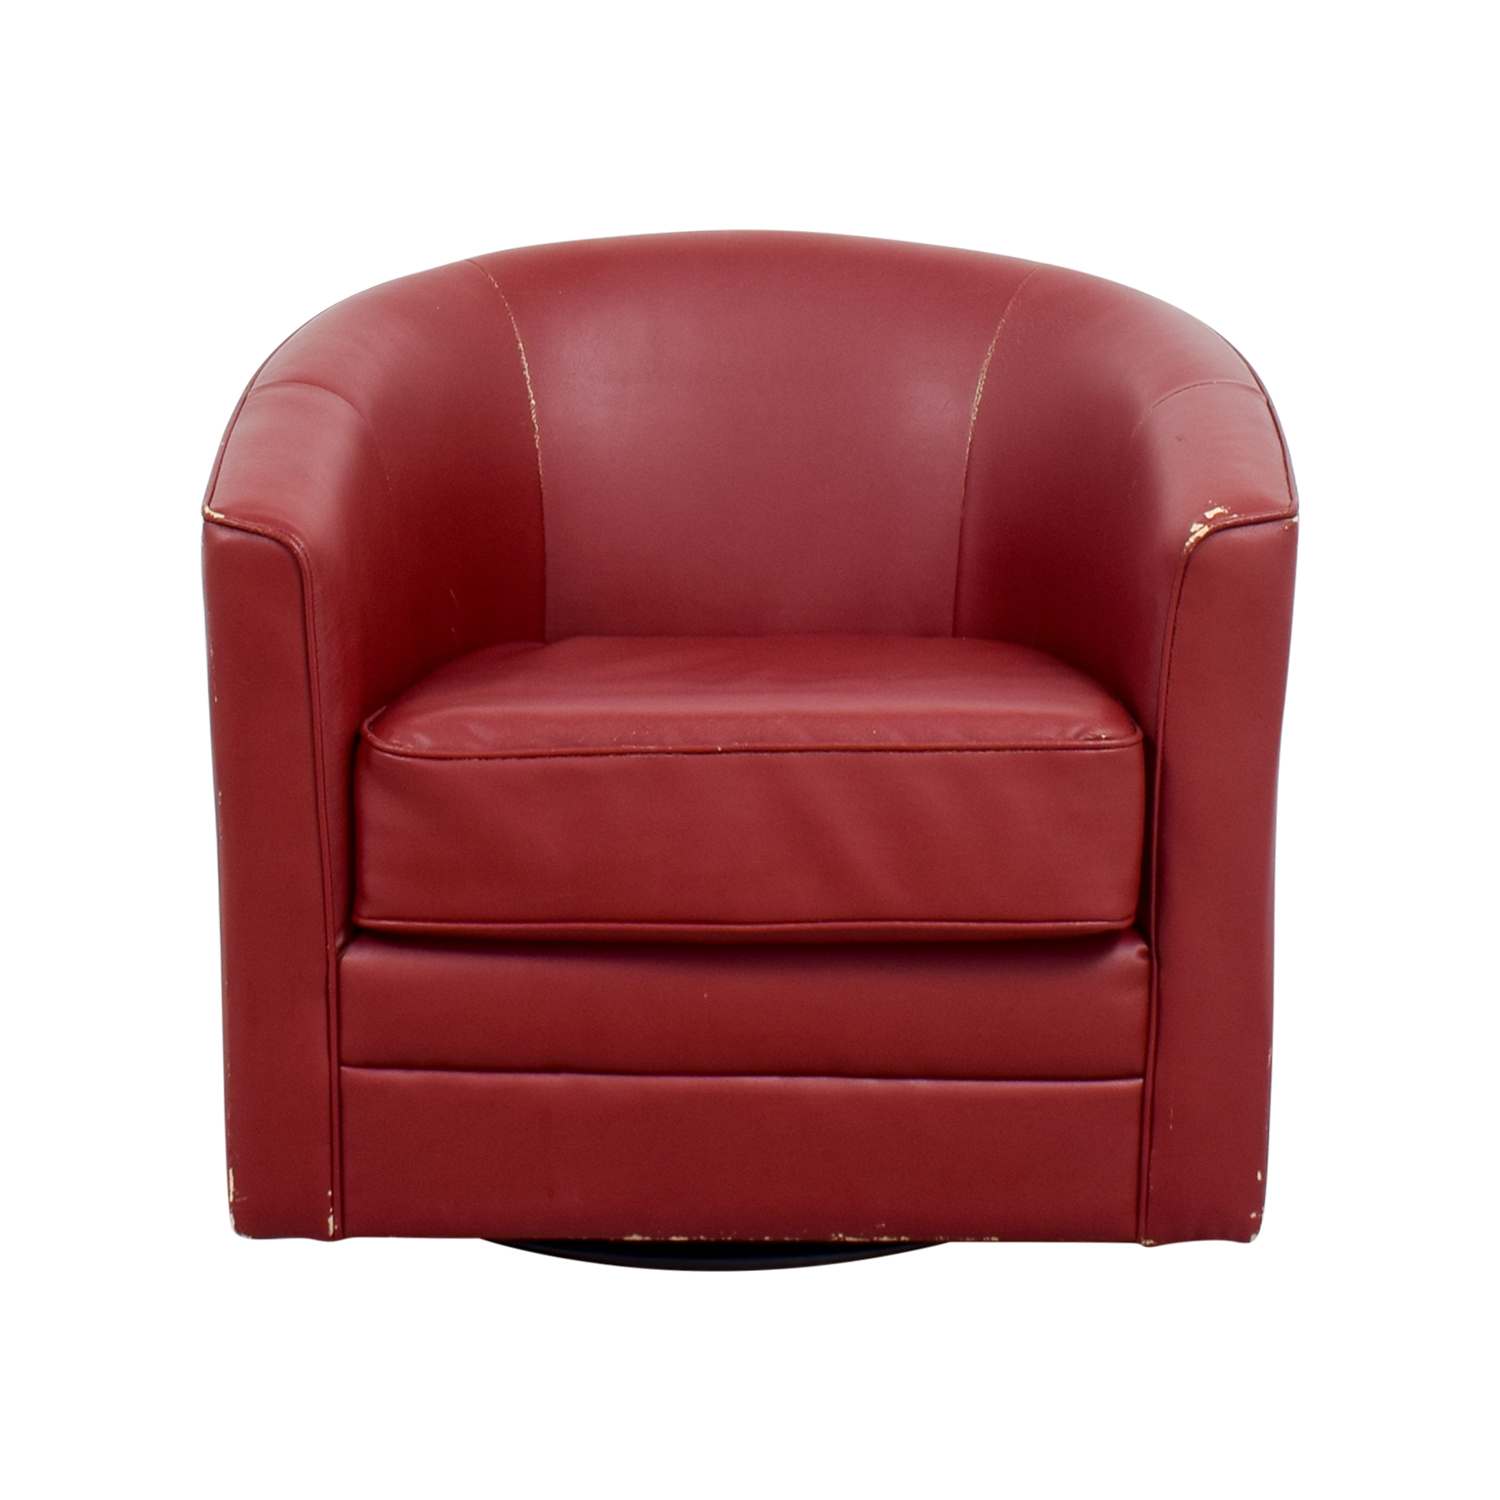 Bobs Furniture Bobs Furniture Red Leather Chair Accent Chairs